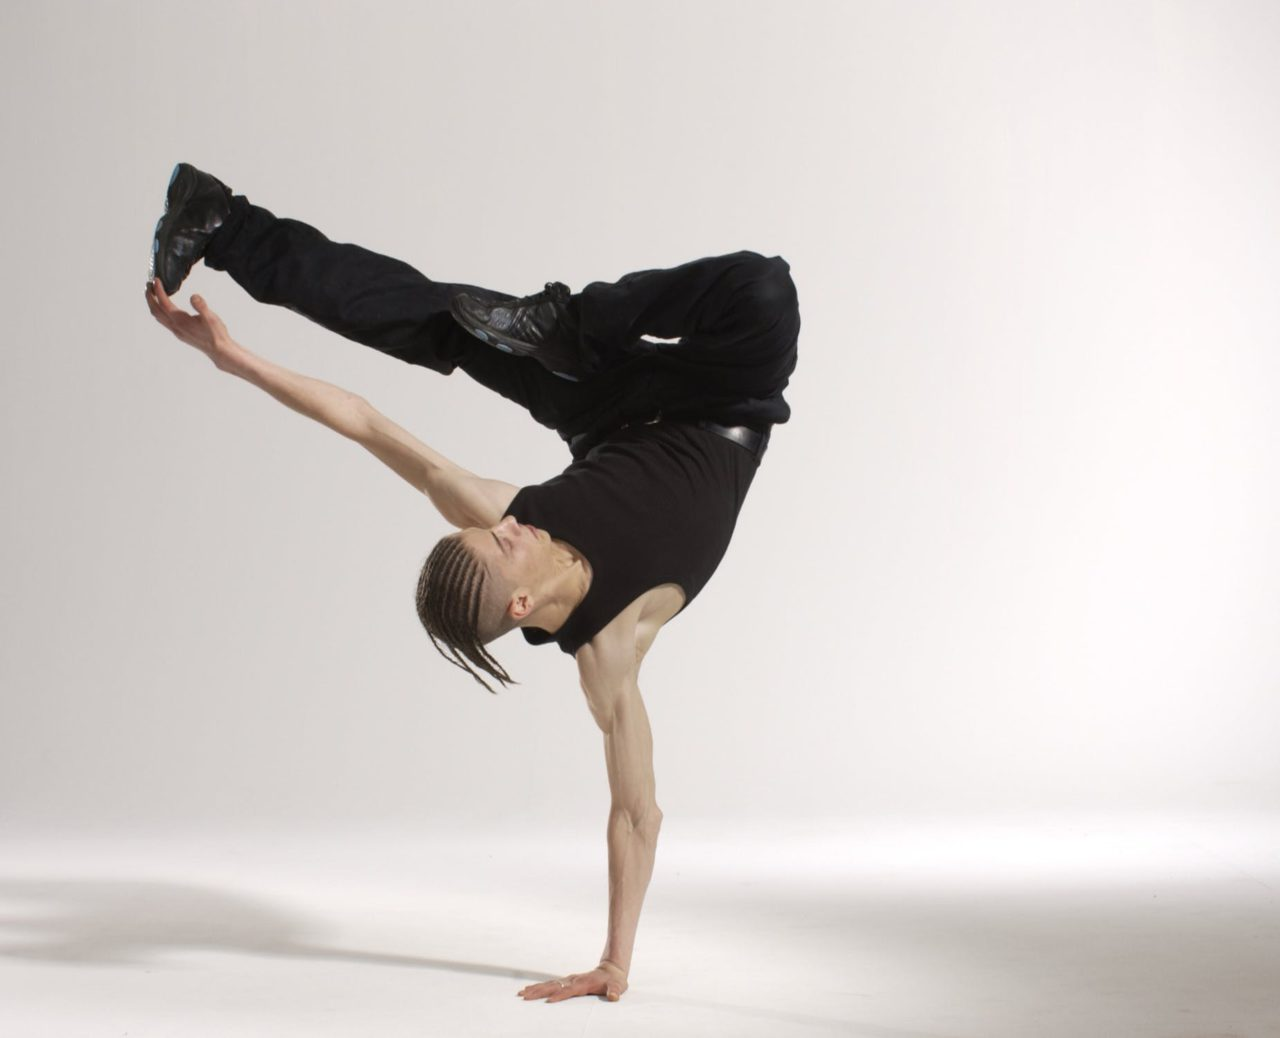 man wearing all black break dancing with a white background